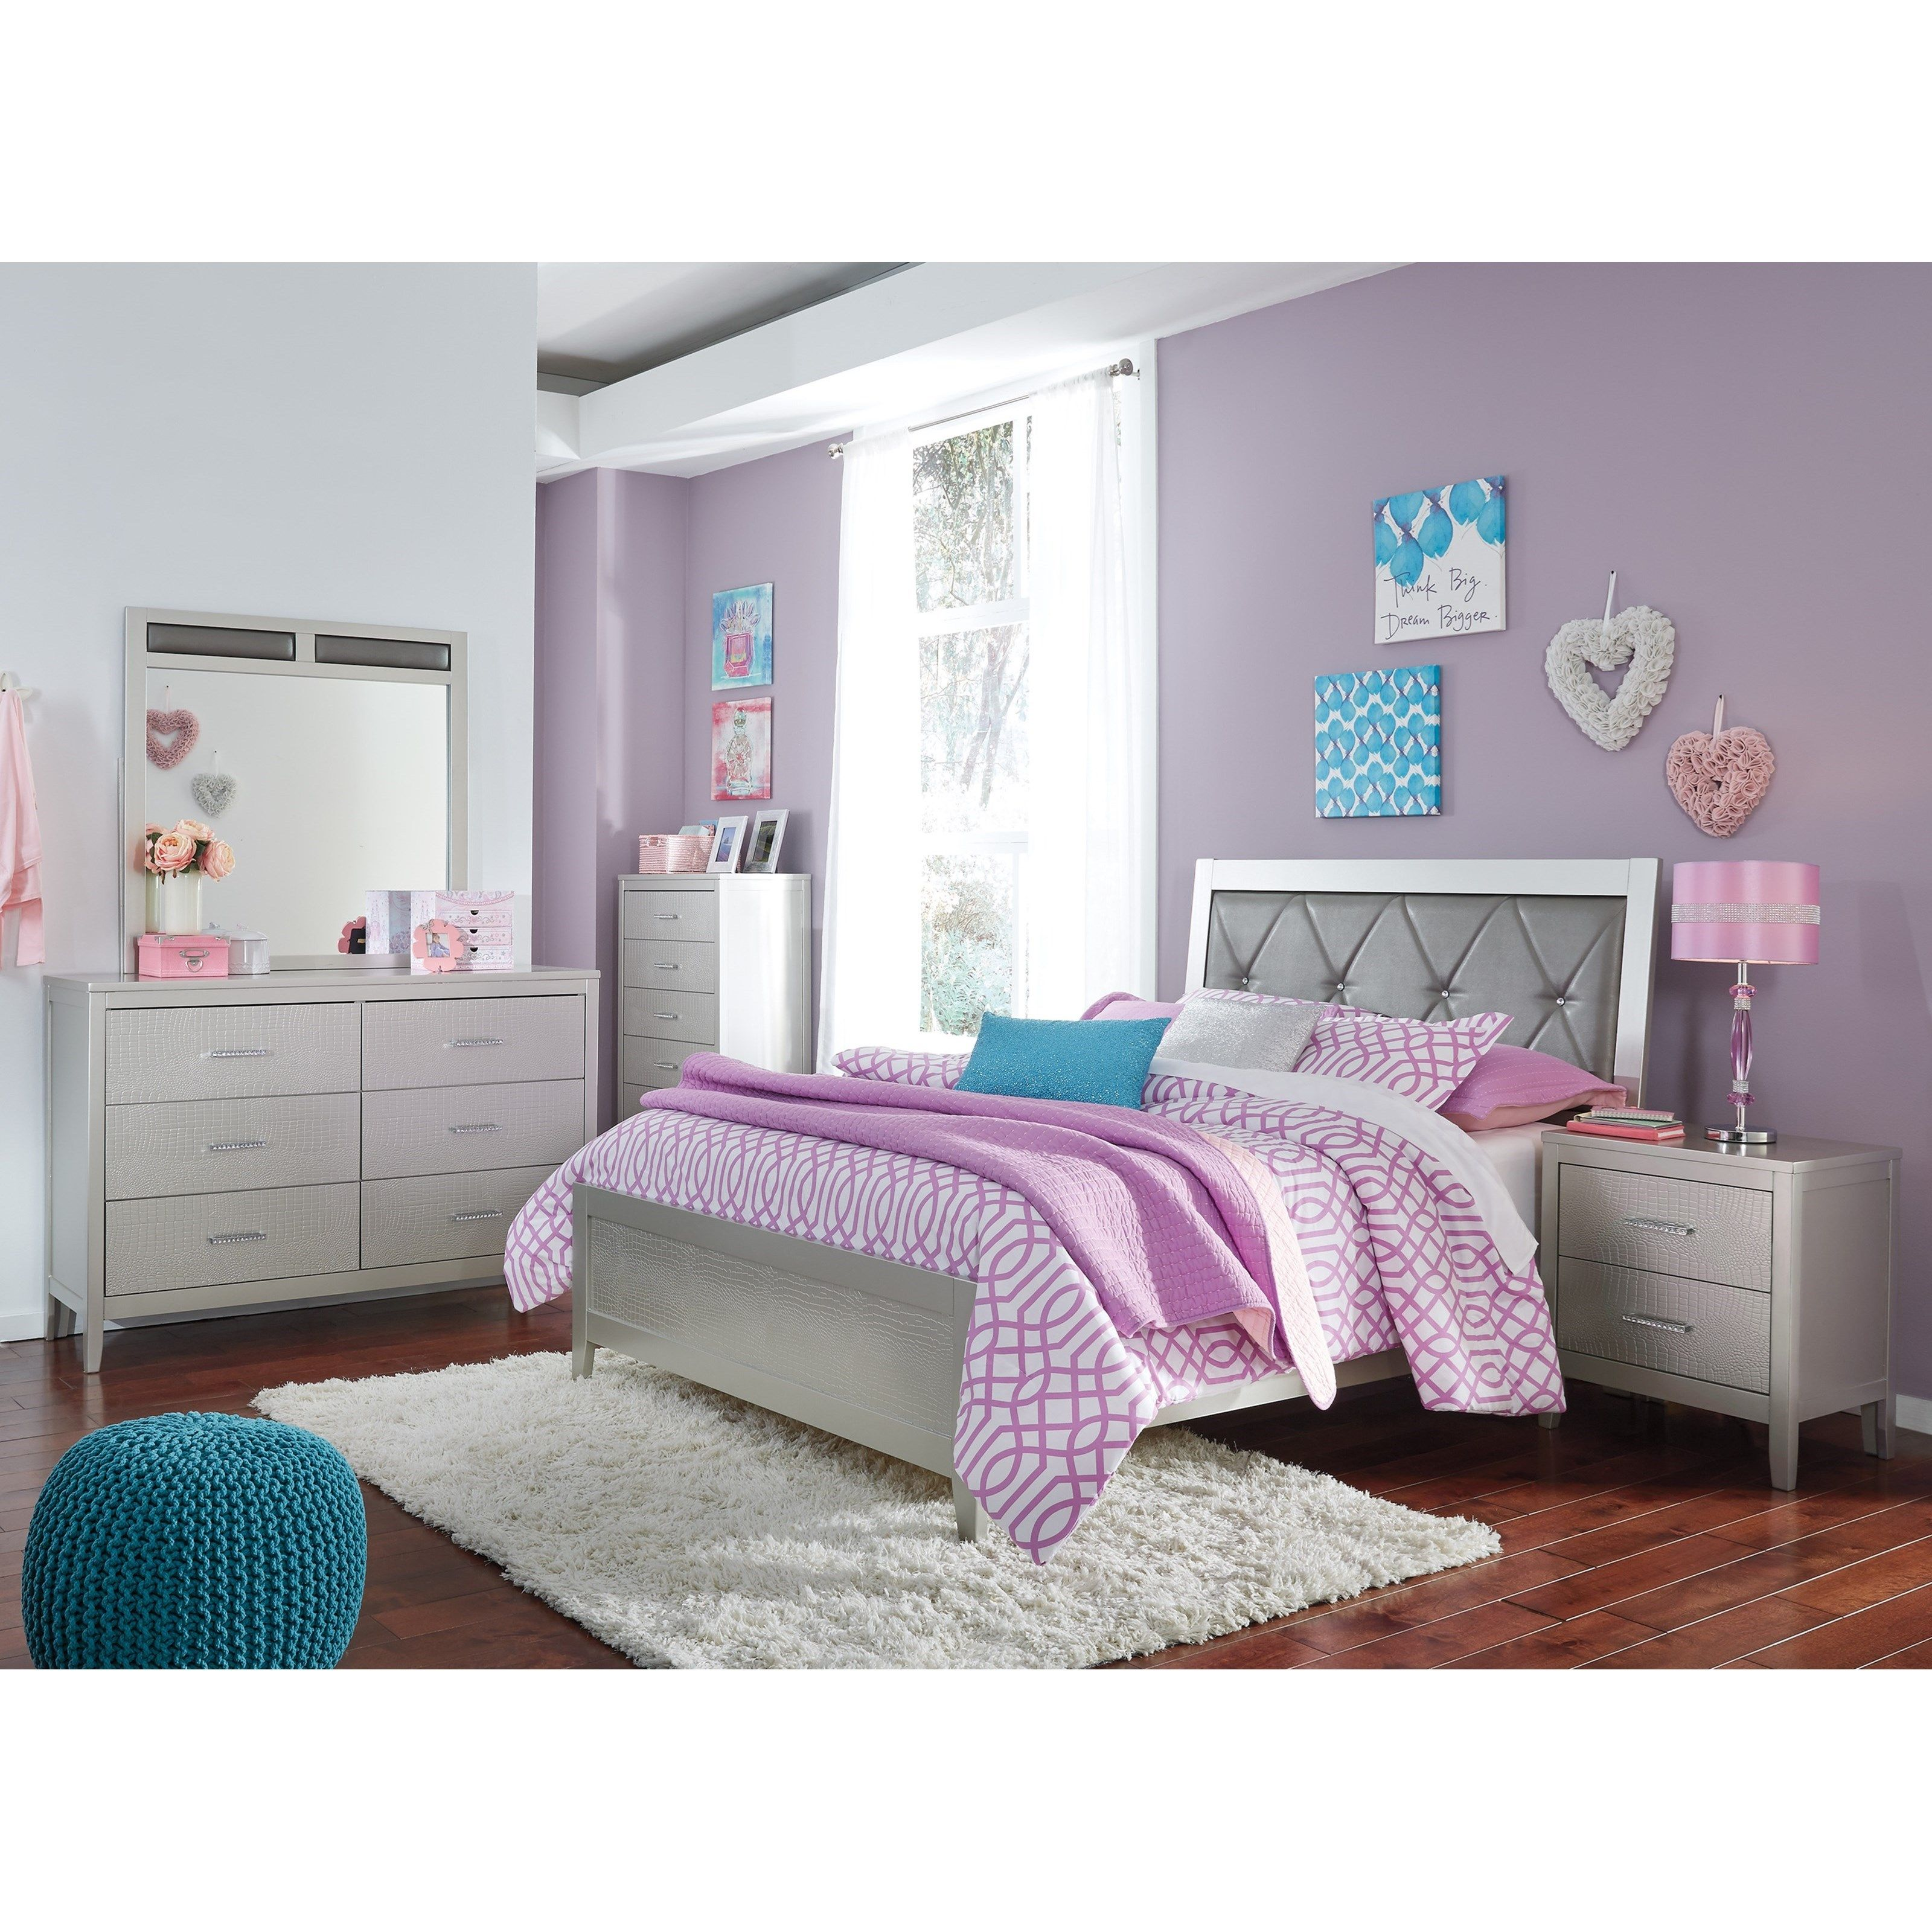 Olivet Glam Full Bedroom Group by Signature Design by